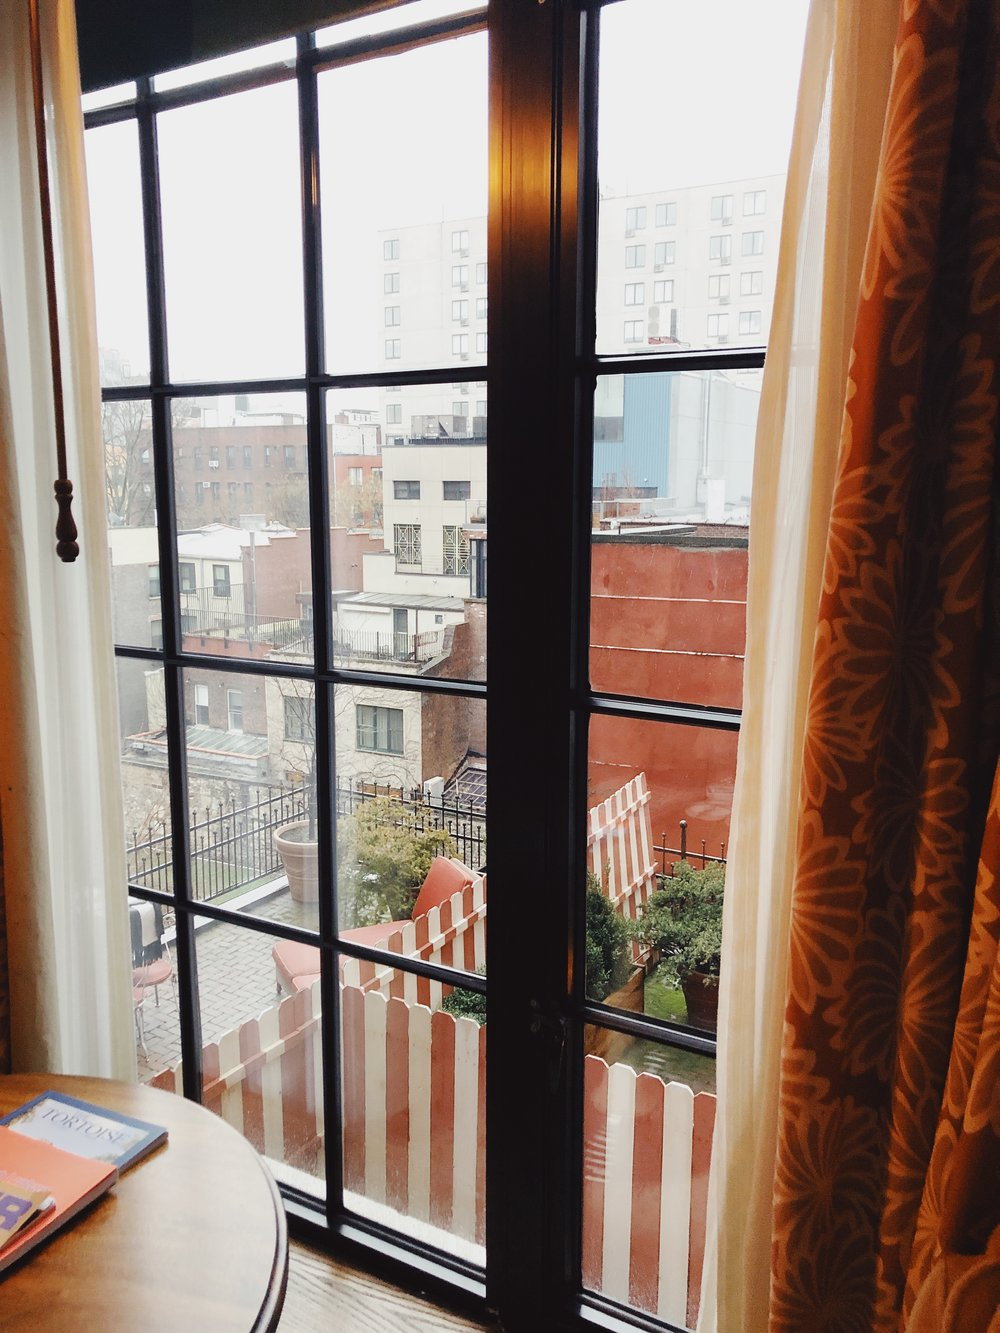 THE BOWERY HOTEL -